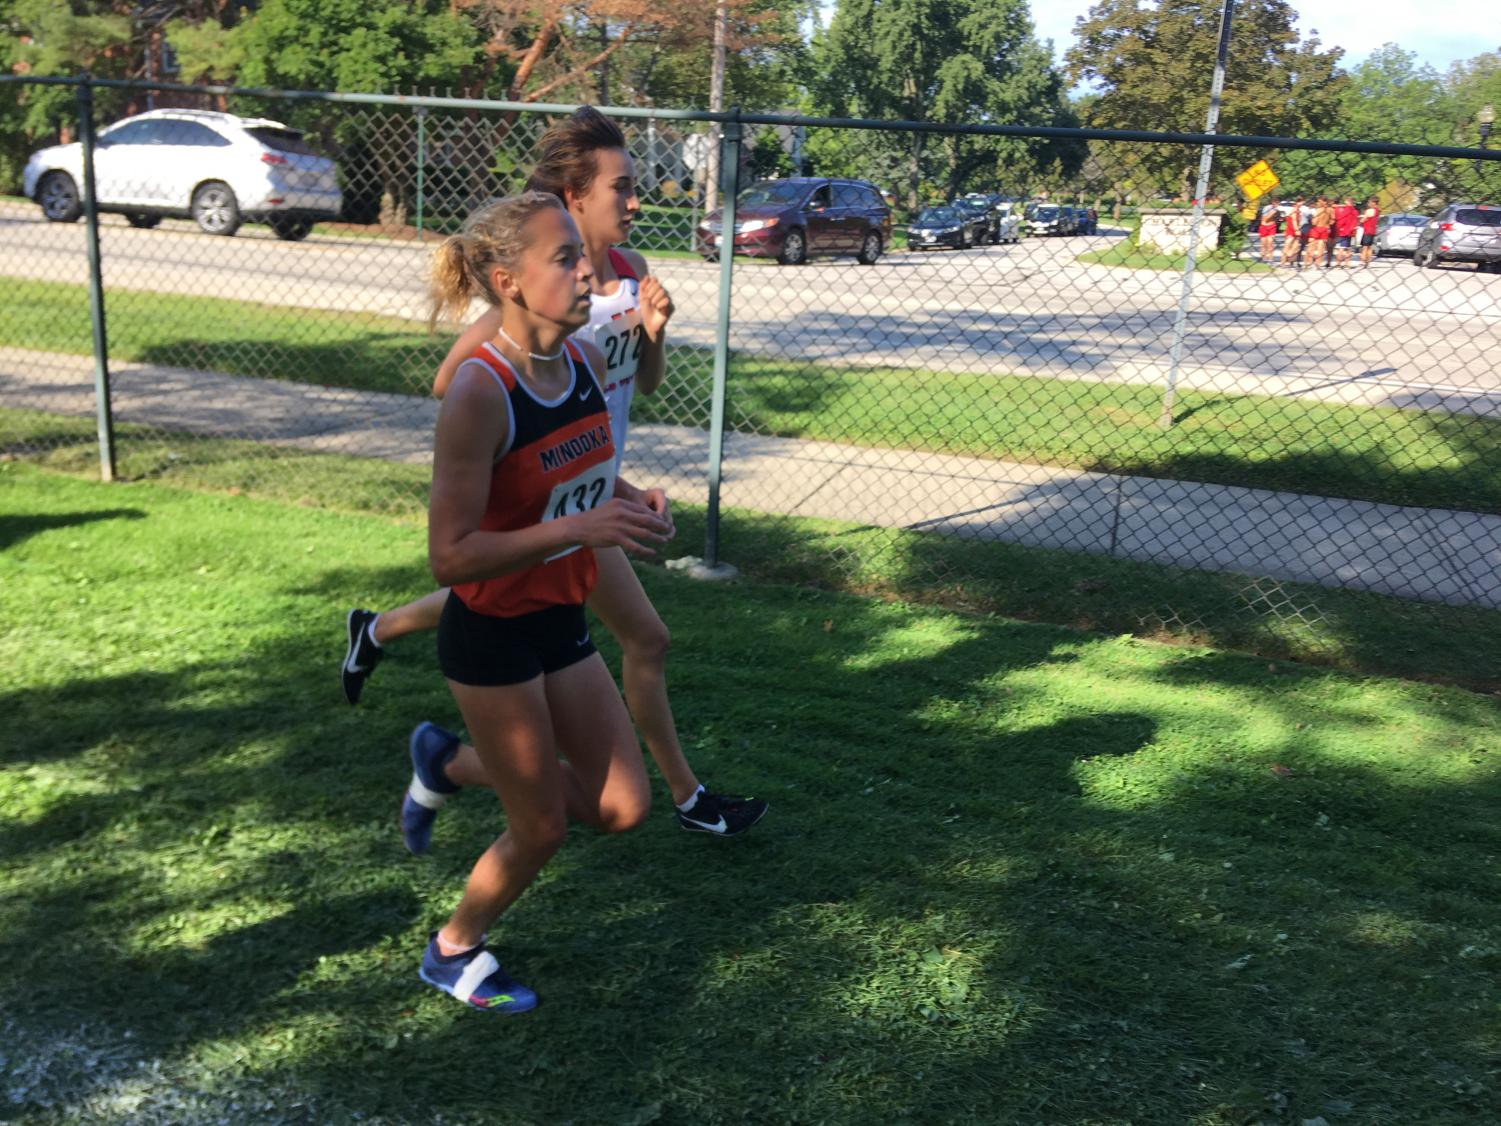 Julia Dames, senior, runs at the Hornet/Red Devil Invite on Sept. 7. The following weekend at the First to the Finish Invite in Peoria, Dames finished 10th and led her team to 6th place.